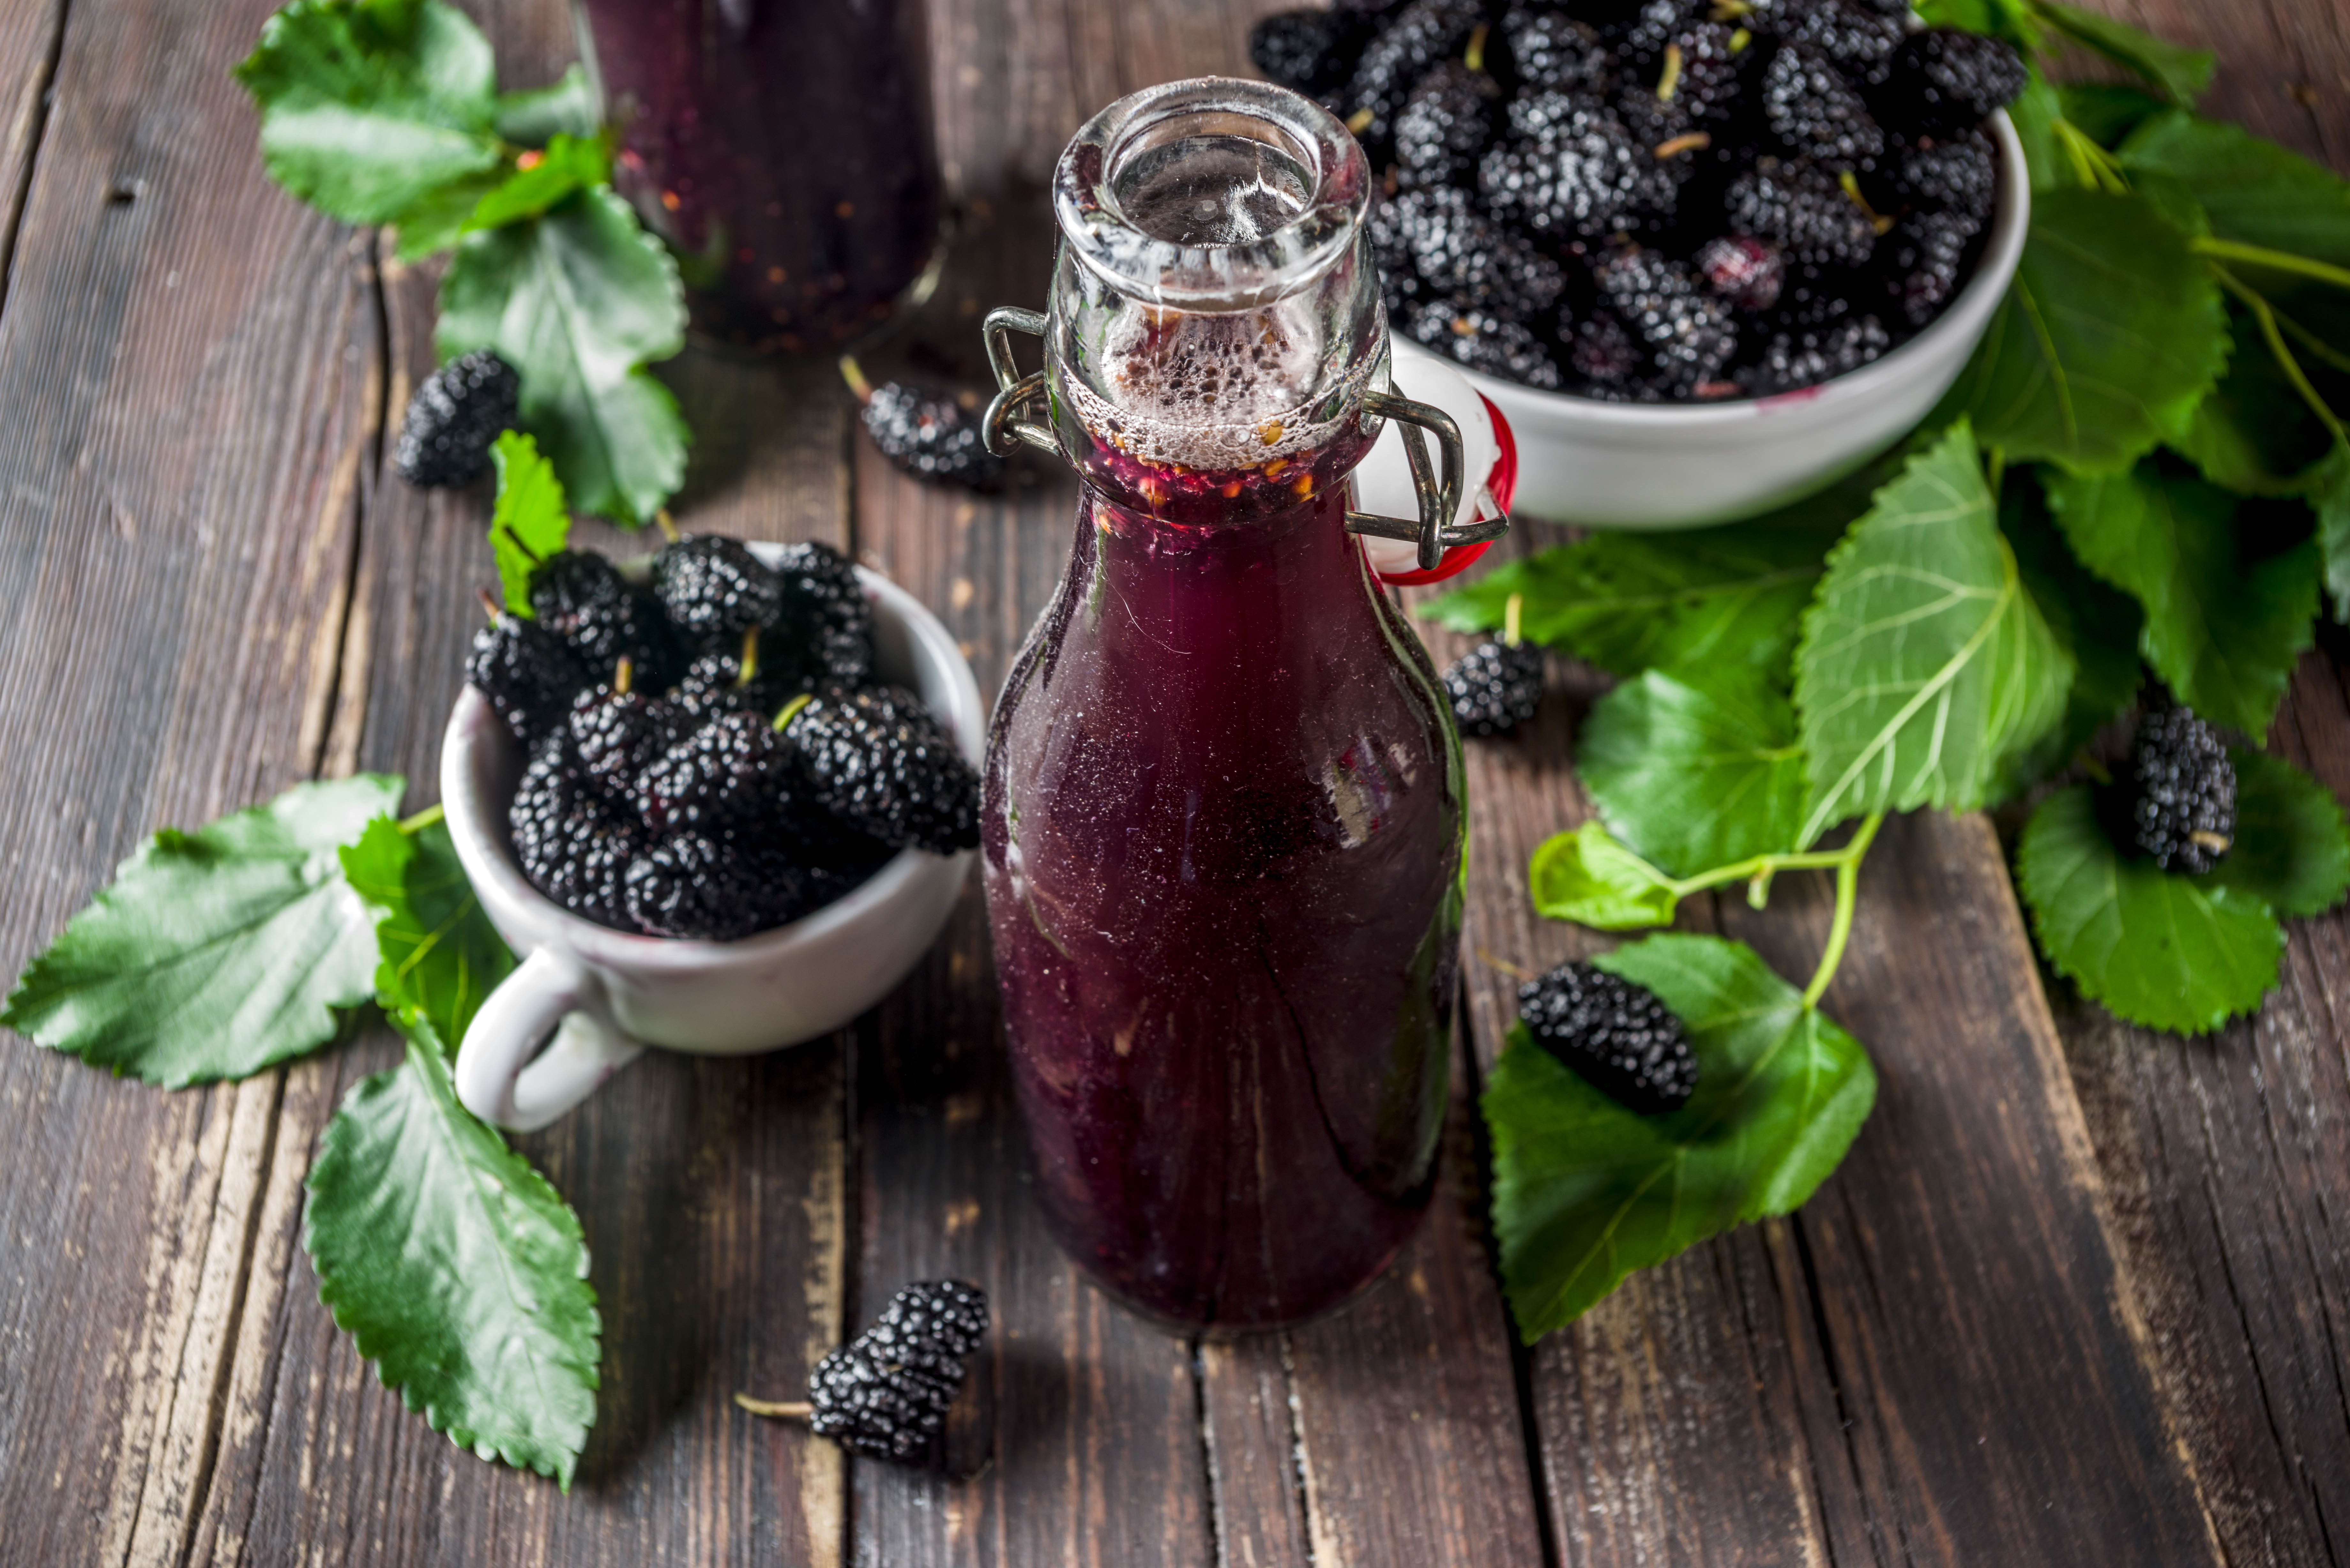 A glass bottle holding a purple mulberry shrub sits on a slatted wooden table with a white plate and teacup full of mulberries and an array of green leaves.